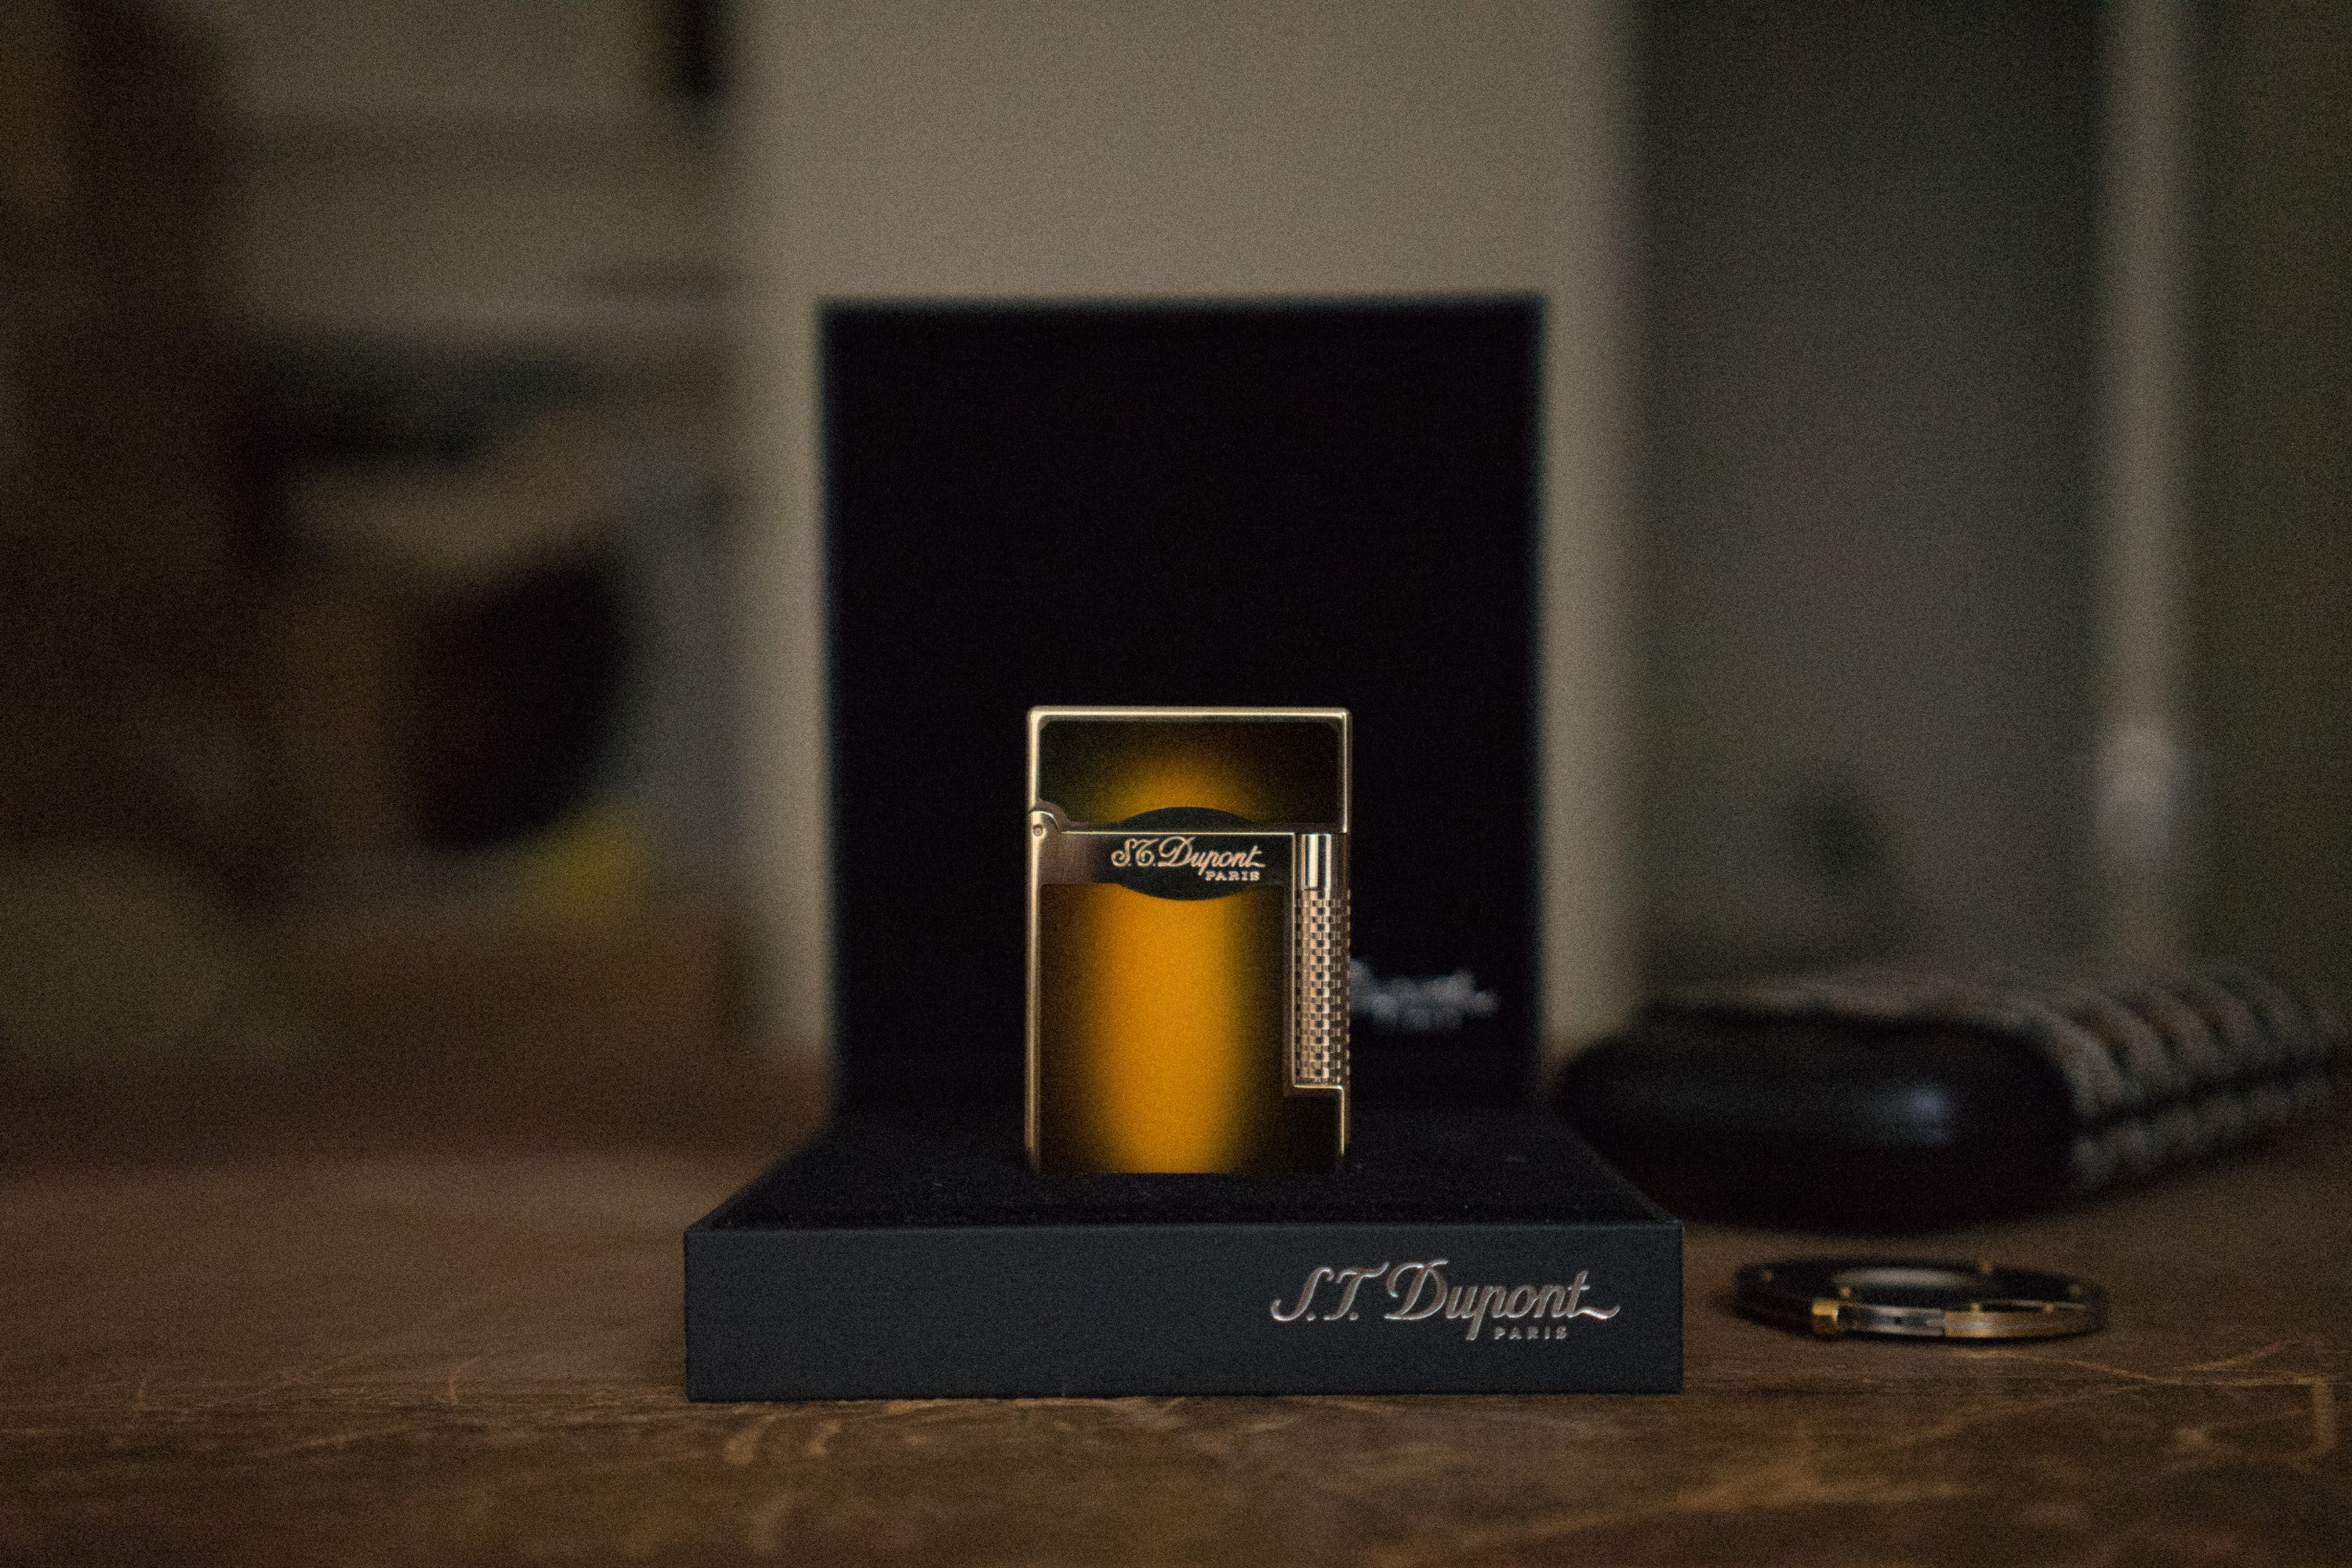 ST Dupont Le Grande Lighter in Brown Lacquer